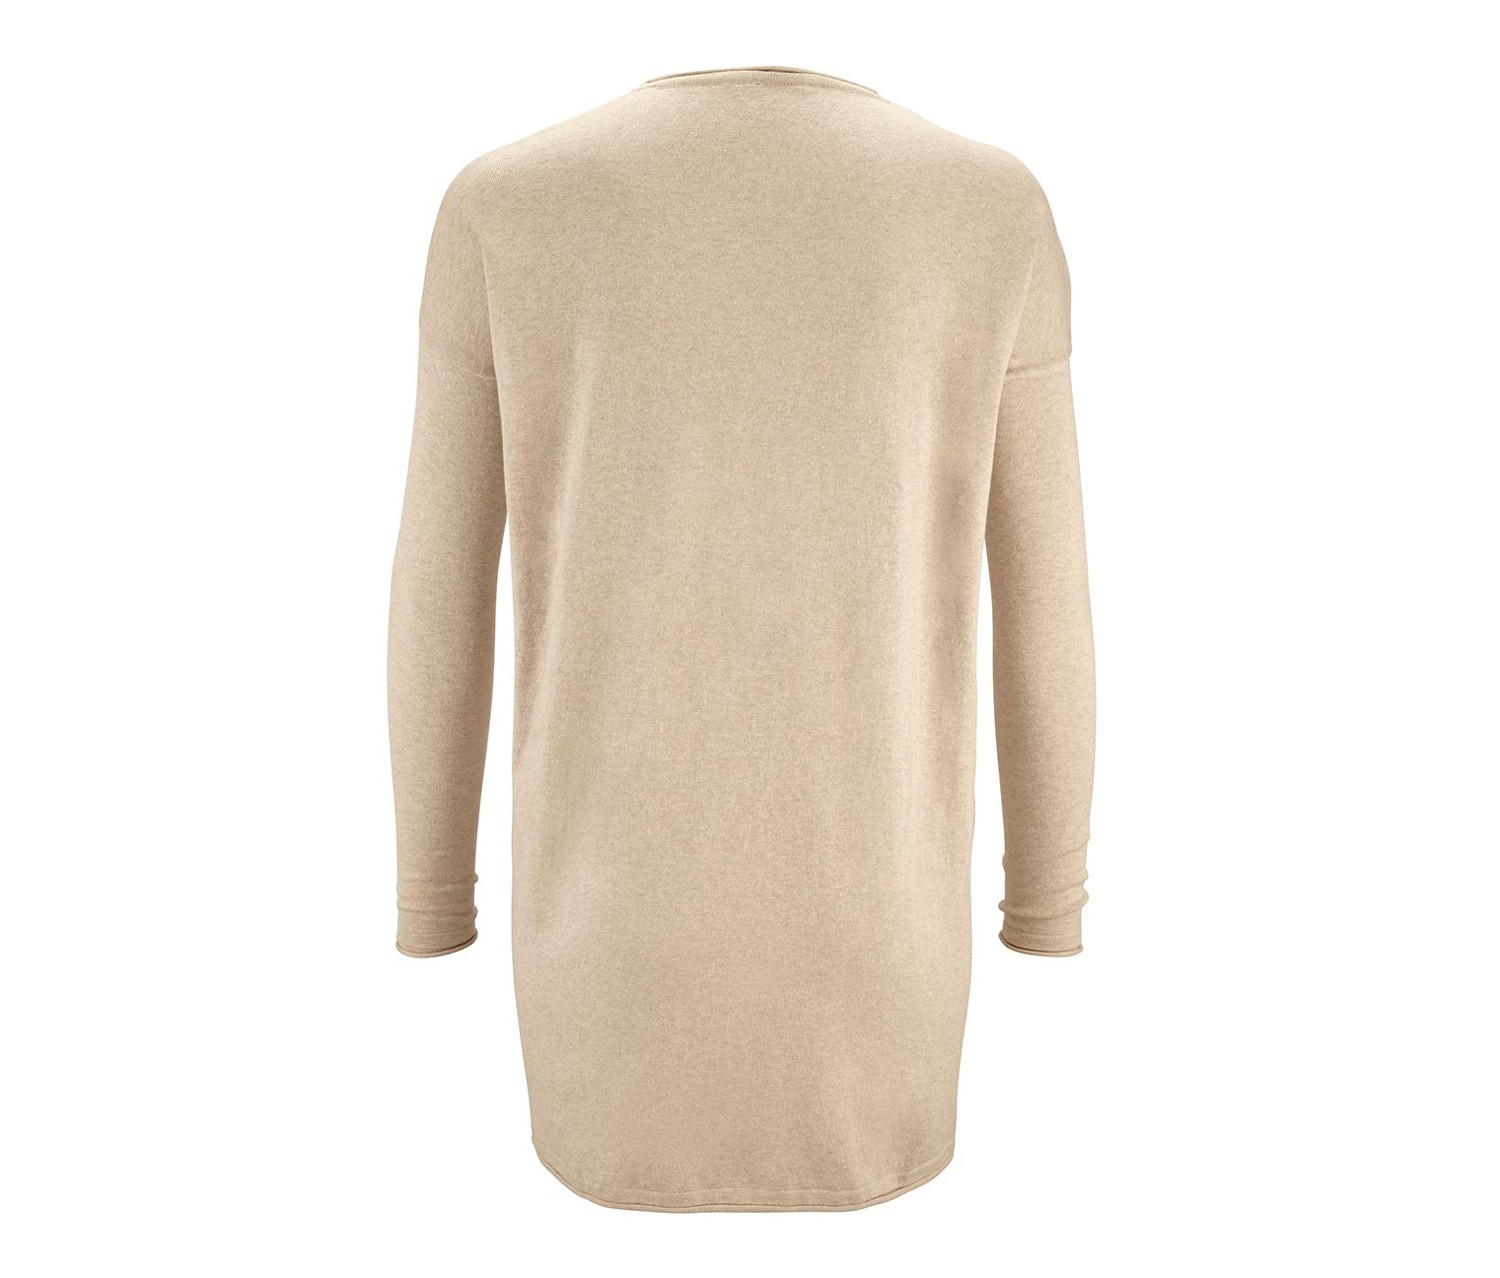 Womens Cardigan, Fine Knit, Beige  Brands For Less